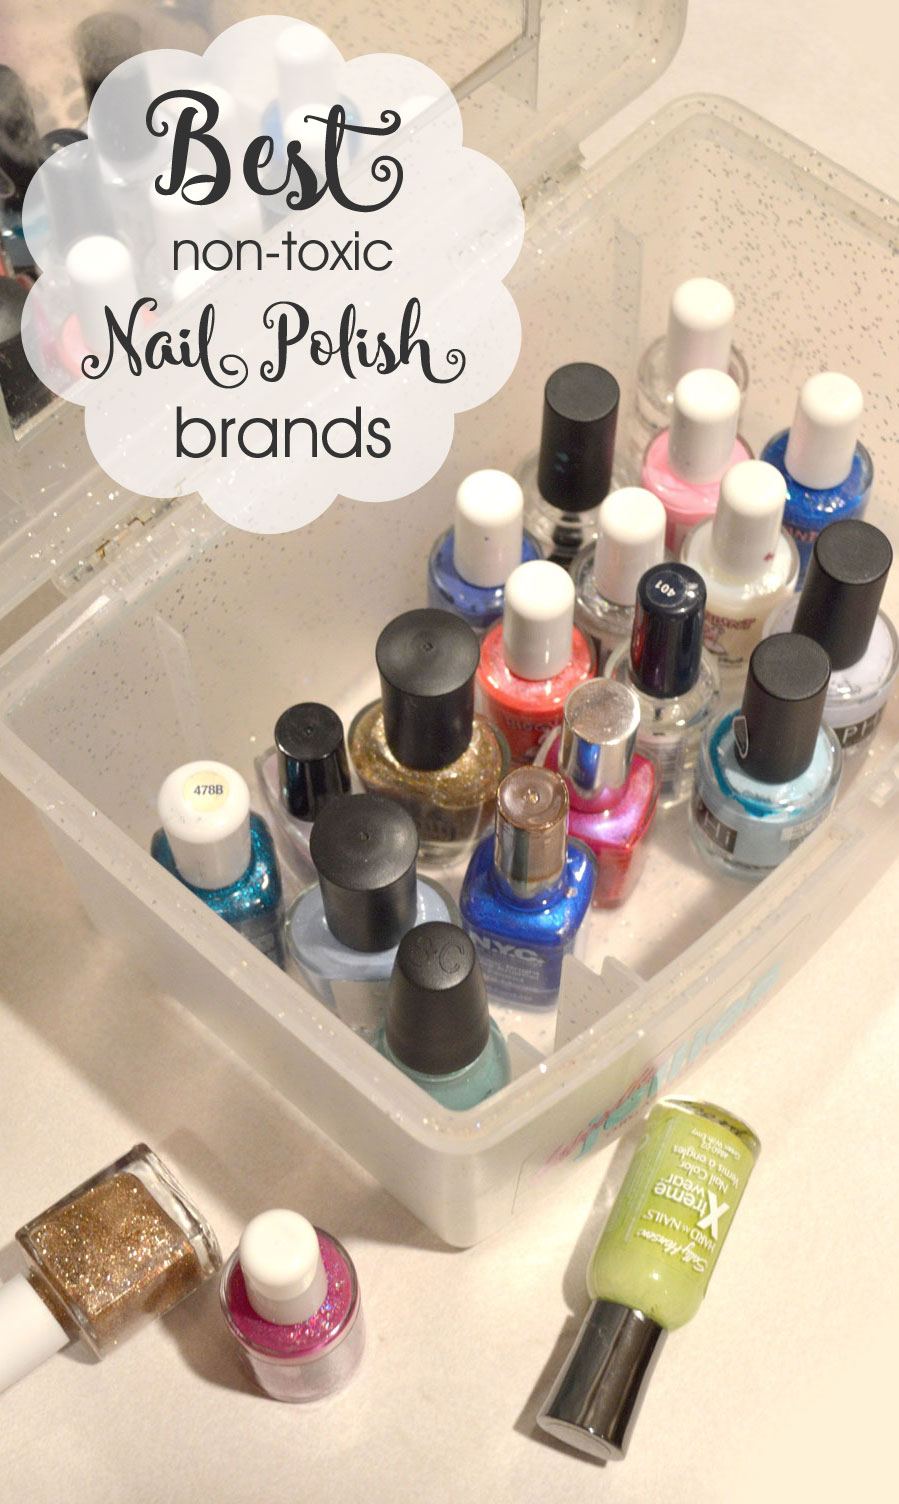 Best Non-Toxic nail polish brands - Mommy Scene